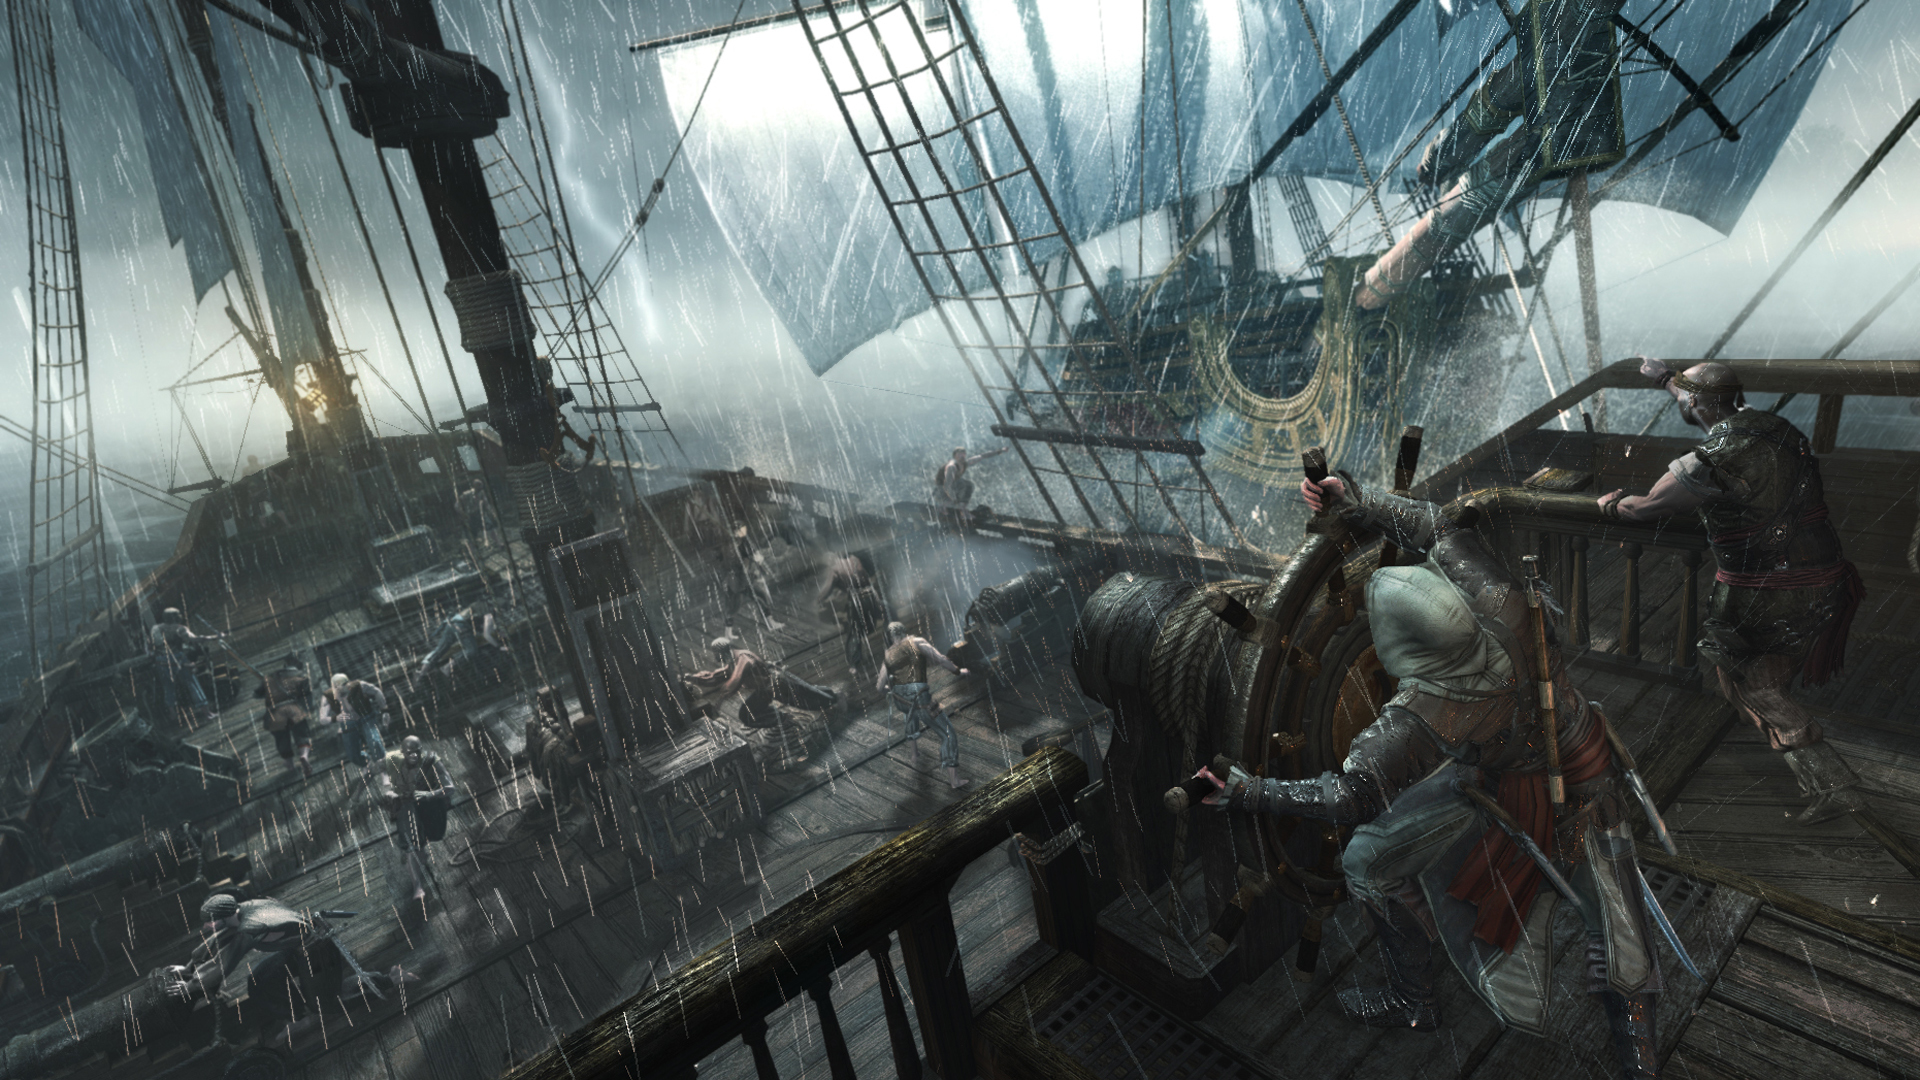 assassins-creed-black-flag-boarding-heavy-rain-1920%C3%971080-wallpaper-wp3802591